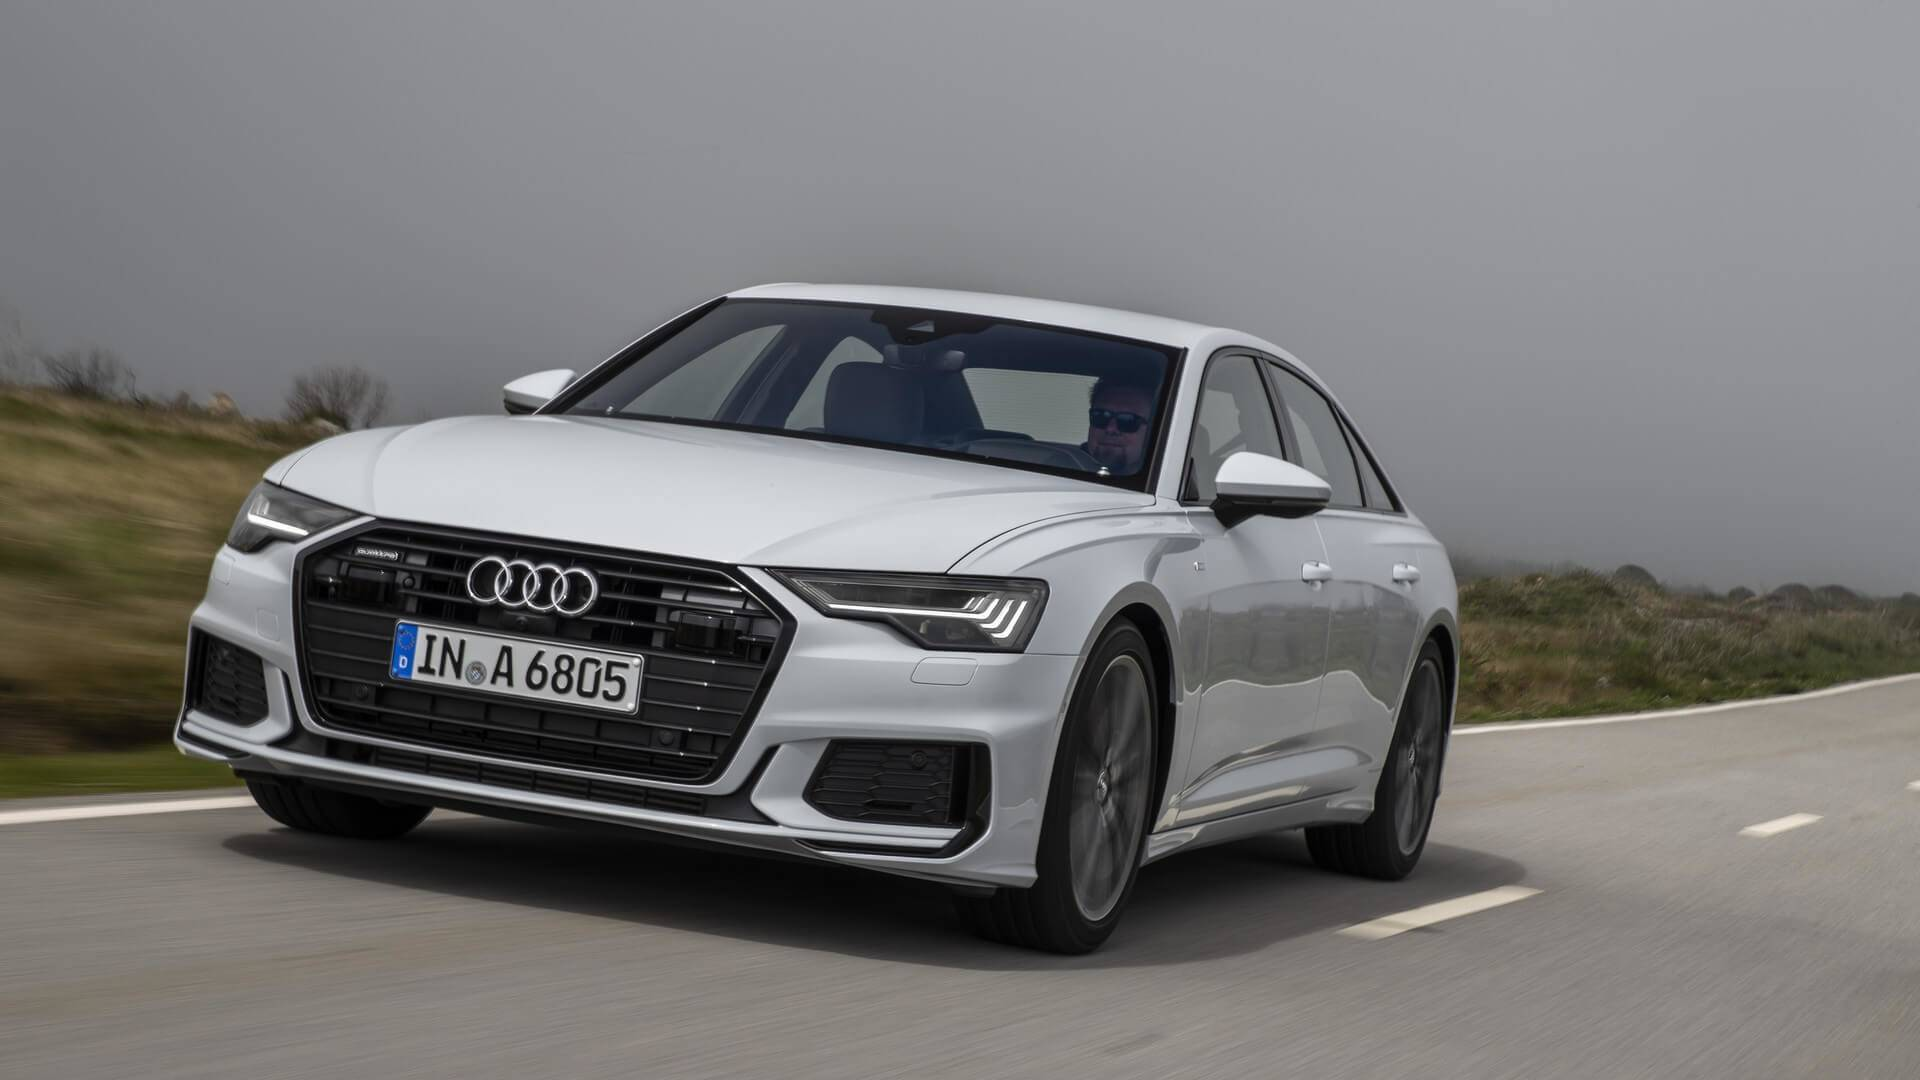 2019 Audi A6 Sedan Detailed In Extended Gallery 172 Photos